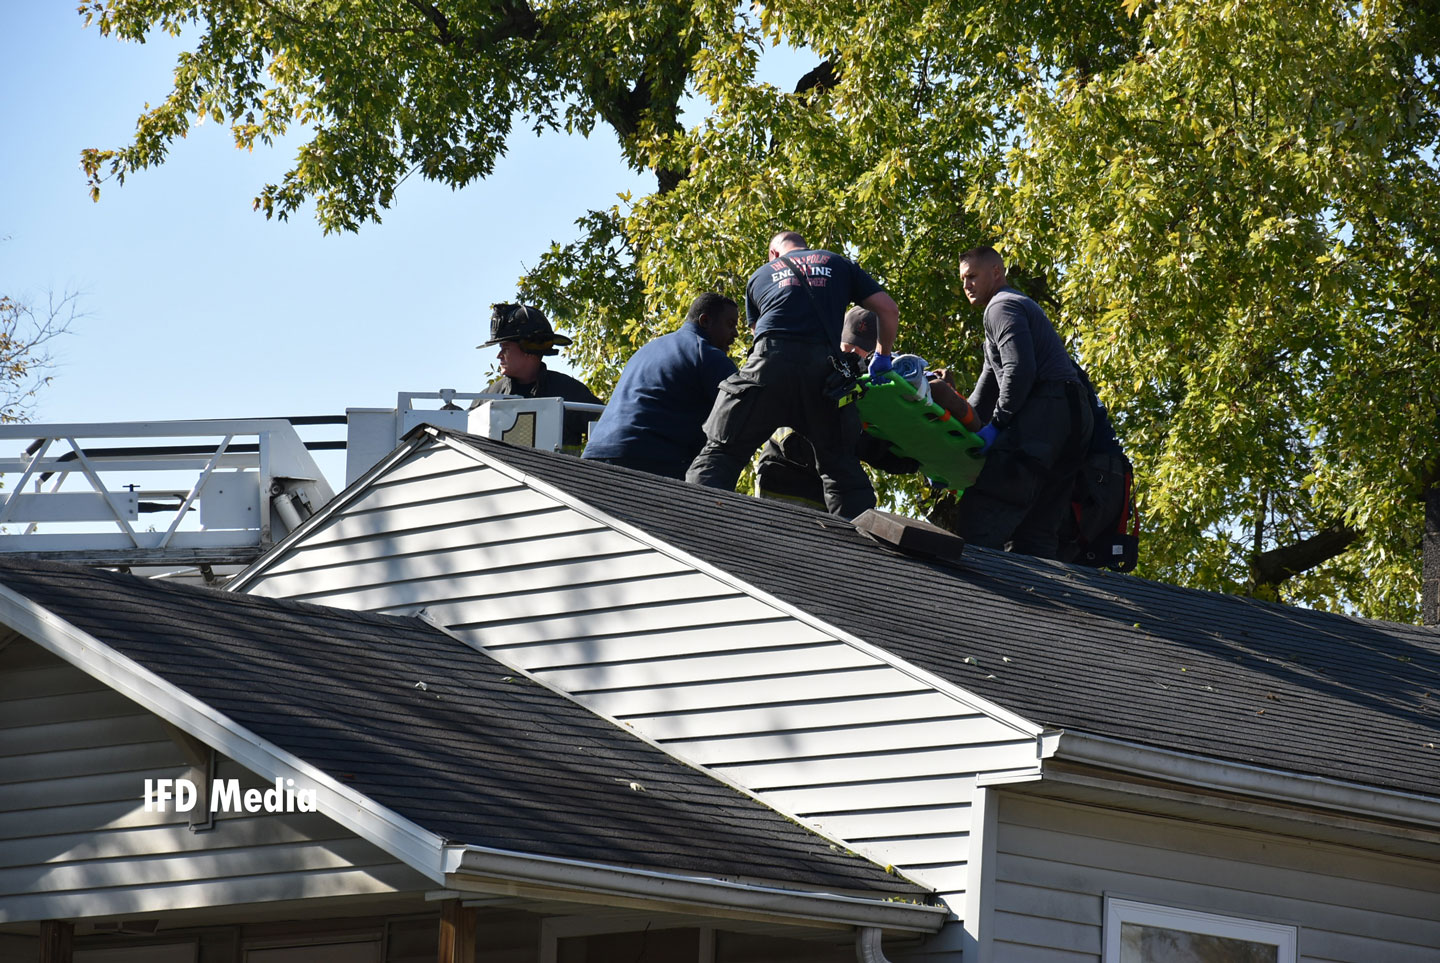 Firefighters rescue the injured patient from the home's roof